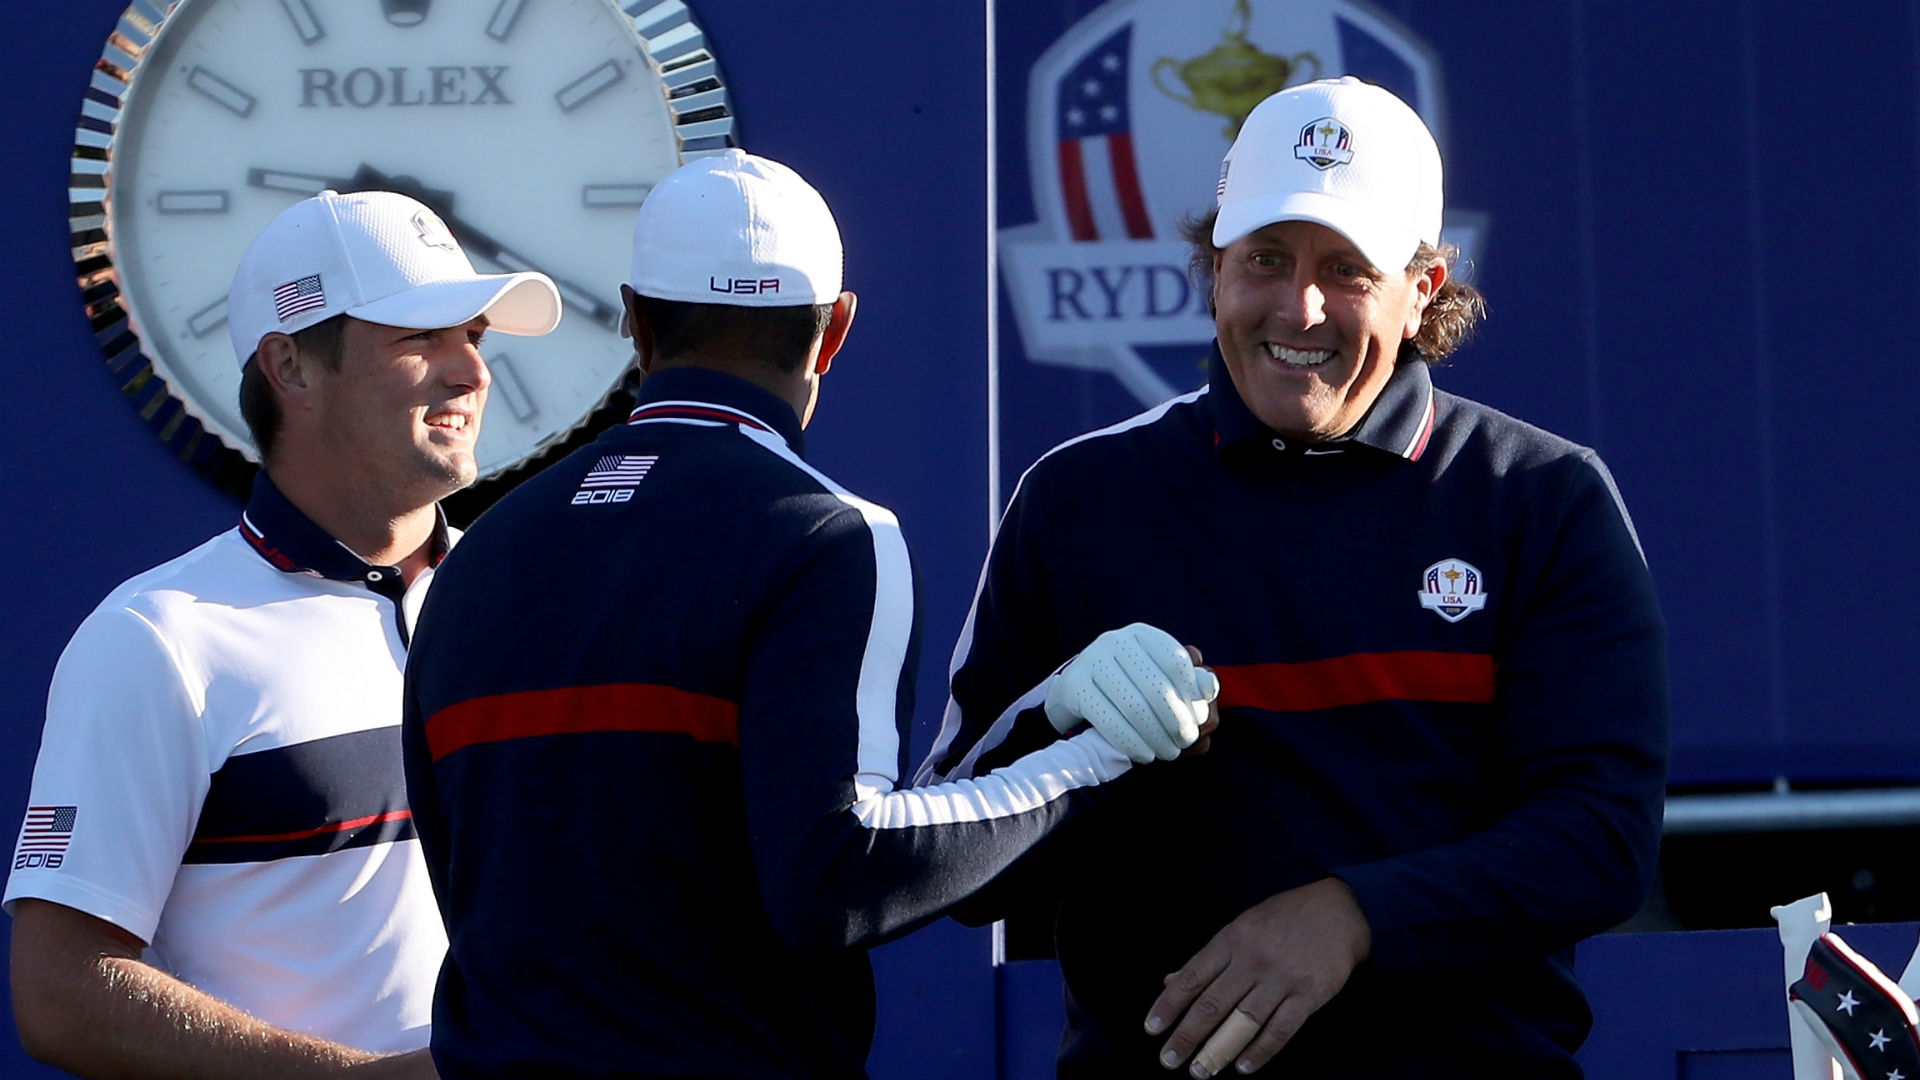 An in-depth look at the Ryder Cup